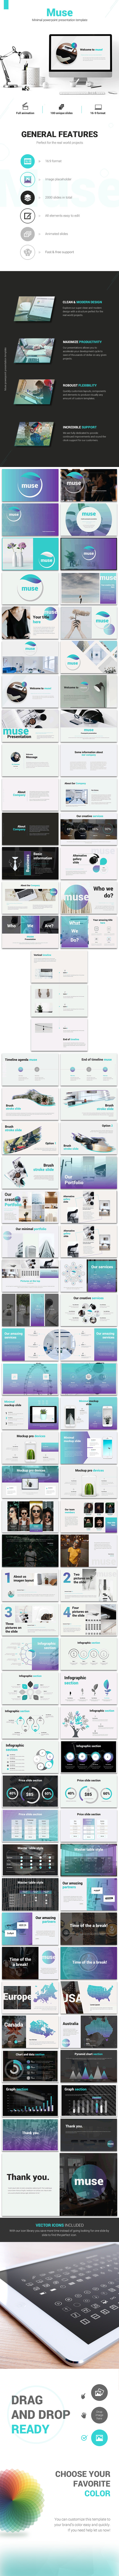 GraphicRiver Muse Modern Powerpoint Presentation 20824280